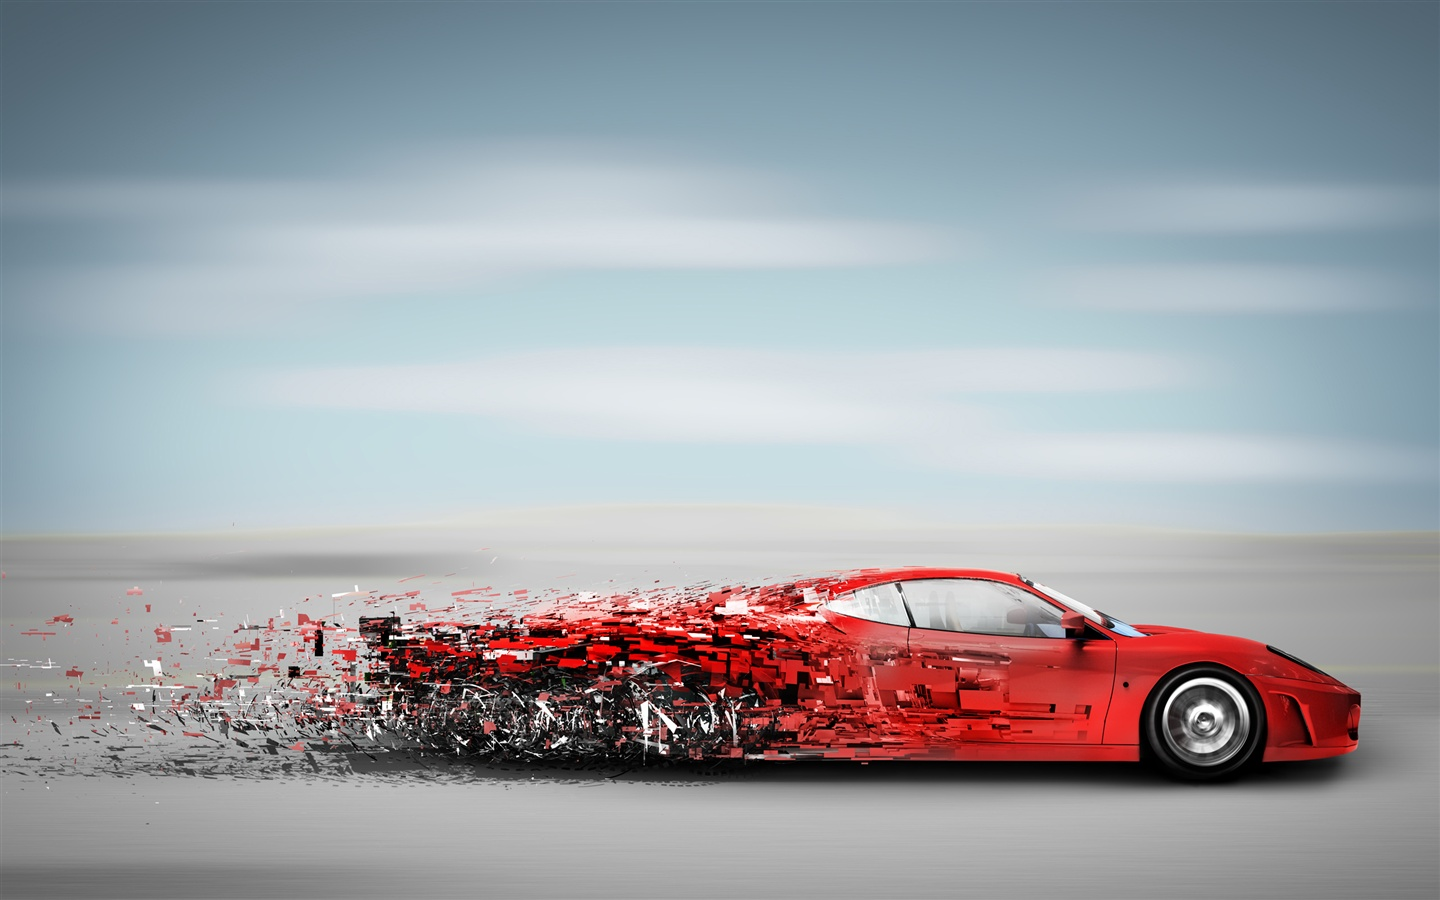 Wallpaper Red Sports Car In High Speed Running Debris Creative 2560x1600 Hd Picture Image